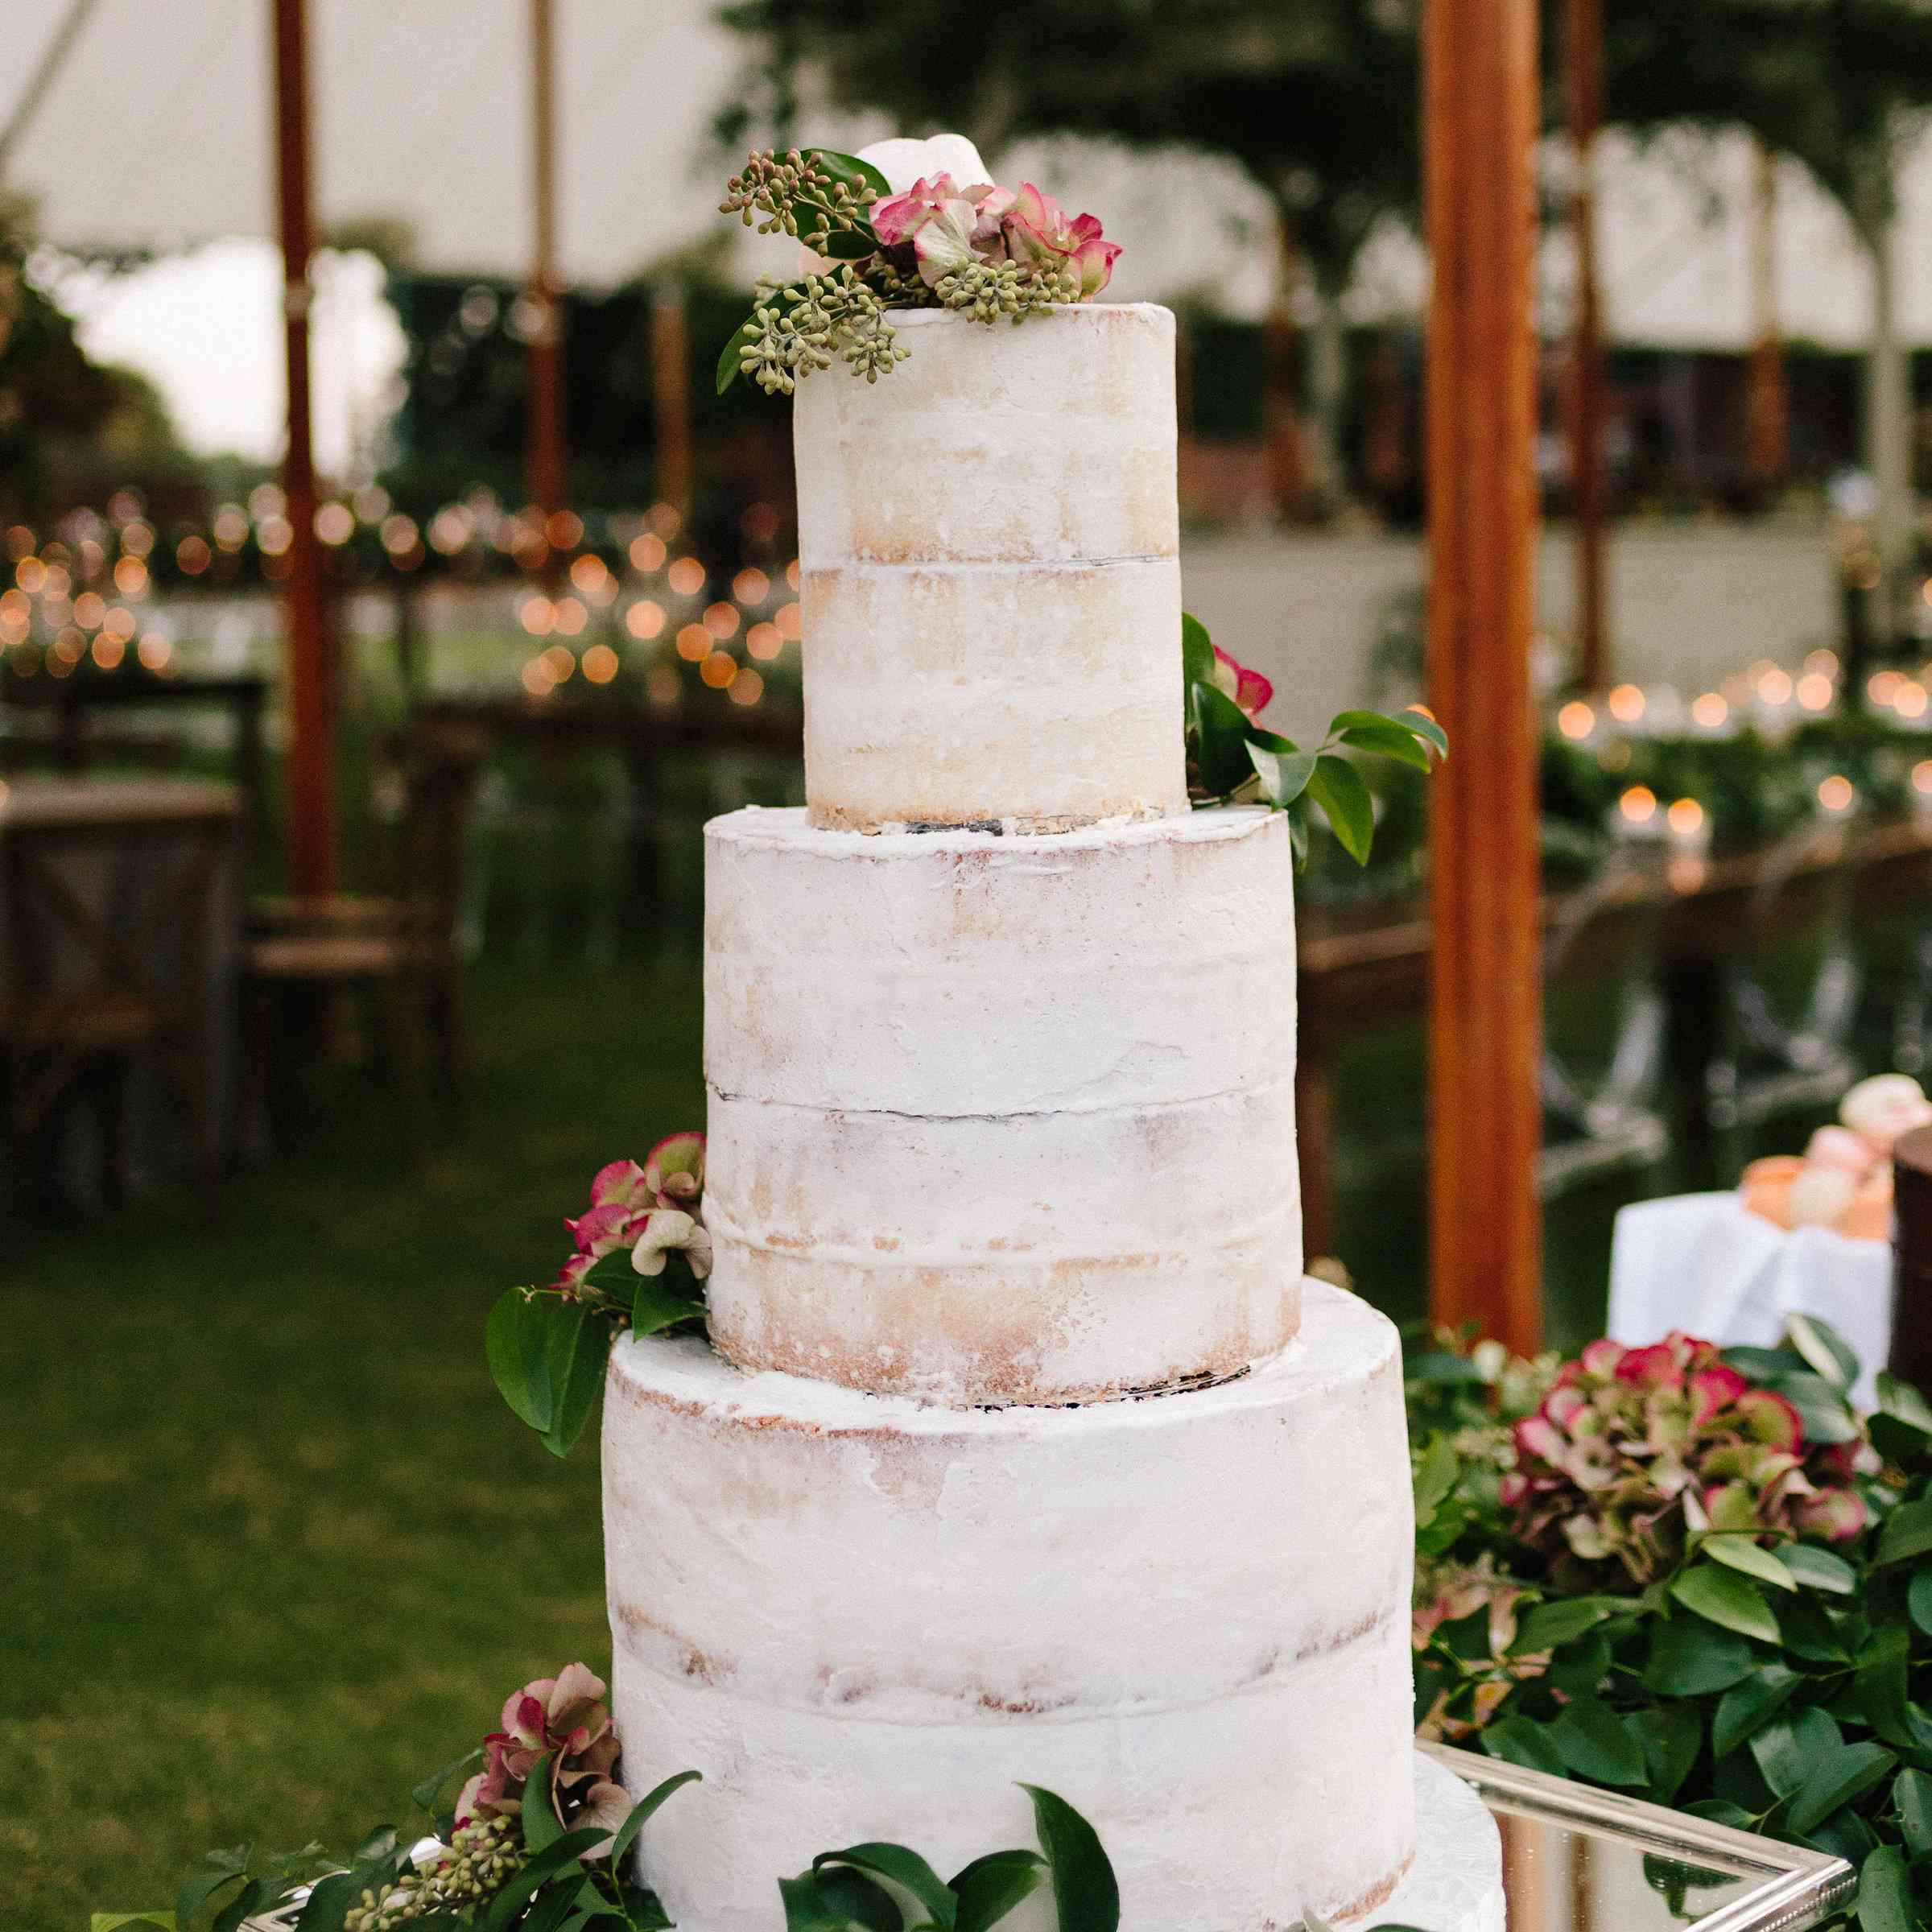 Elongated tiered semi-naked wedding cake with floral accents and strawberry filling